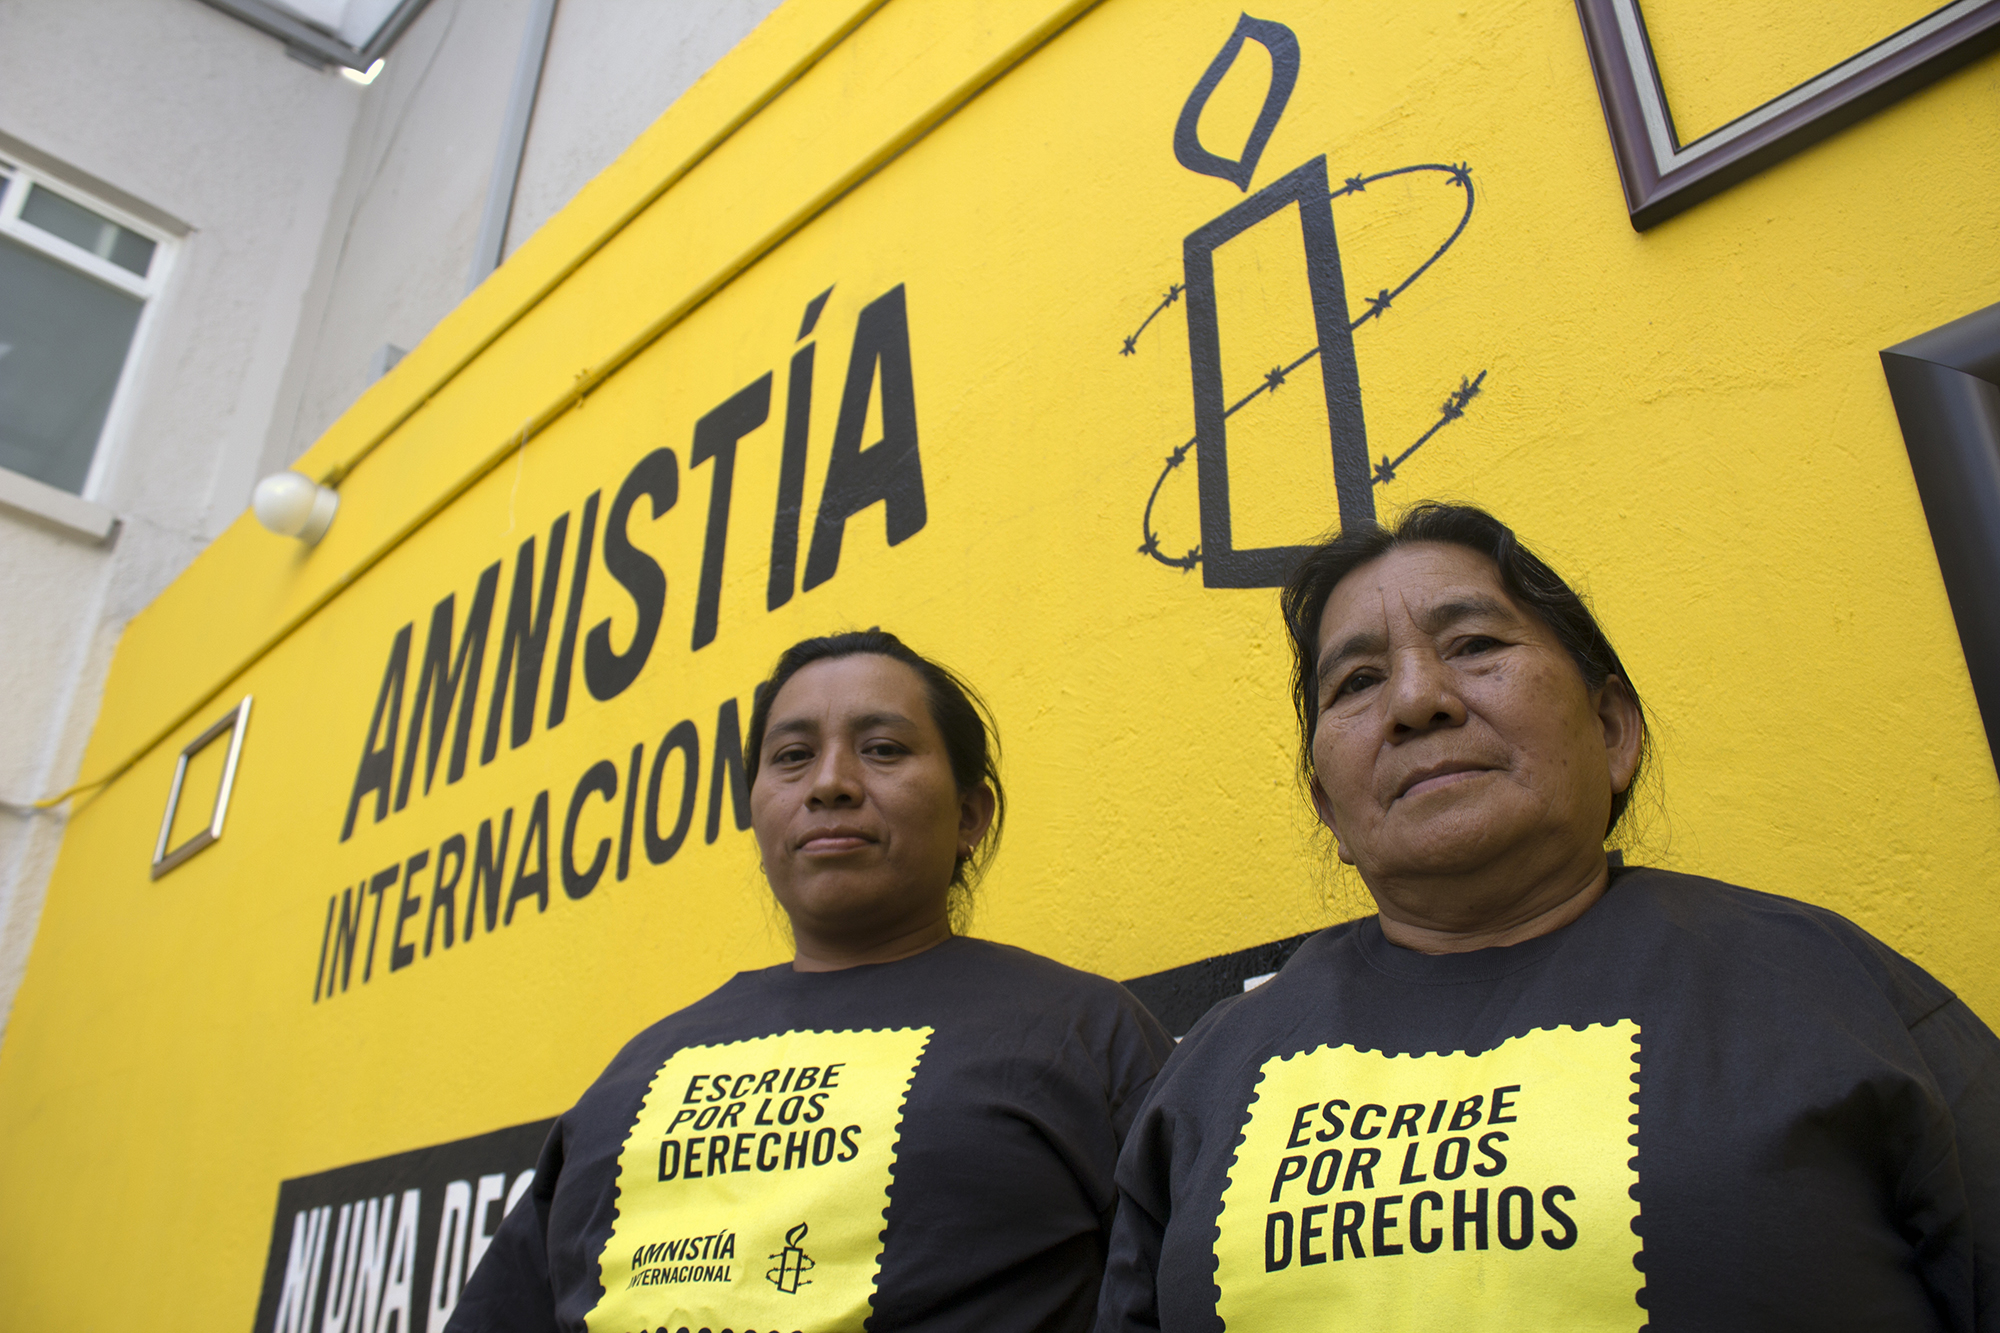 "Cecilia Vásquez Sánchez and María Elena Sánchez, Teodora Vásquez Sánchez's sister and mother, pose at Amnesty International's office in Mexico City. Both are wearing Amnesty International tee shirts. In 2008, Teodora del Carmen Vásquez was sentenced to 30 years in prison for ""aggravated homicide"" after suffering a still-birth at work. Teodora, mother of an 11-year-old boy, was expecting a new baby when she started experiencing increasingly severe pain. She called the emergency services but her waters broke soon afterwards. She went into labour, and was unconscious when she gave birth. When she came round, bleeding profusely, her baby was dead. Police at the scene handcuffed her and arrested her on suspicion of murder. Only then did they take her to hospital where she could get the urgent treatment she needed. In El Salvador, women who miscarry or suffer a still-birth during pregnancy are routinely suspected of having had an ""abortion"". Abortion under any circumstance is a crime, even in cases of rape, incest, or where a woman's life is at risk. This makes women afraid to seek help with pregnancy-related problems, leading inevitably to more preventable deaths."